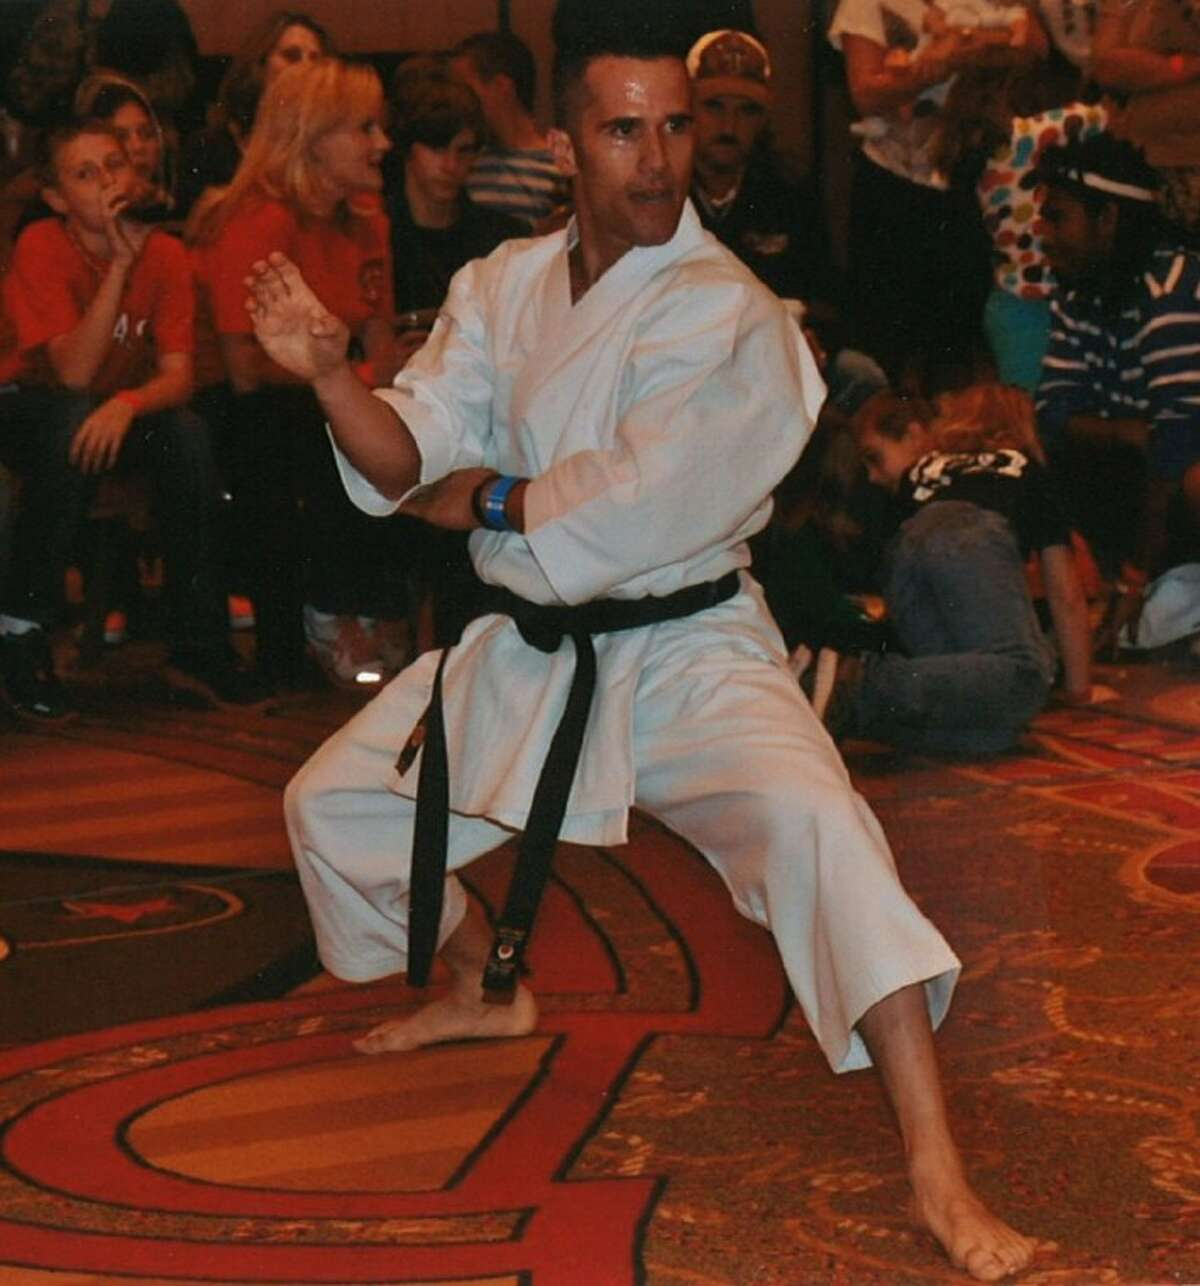 Alfredo Bustamante, a 35-year-old Cypress resident, earned the Triple Crown Title by placing first in three different events at the International Congress of Martial Arts Tournament earlier this month in the Dominican Republic.